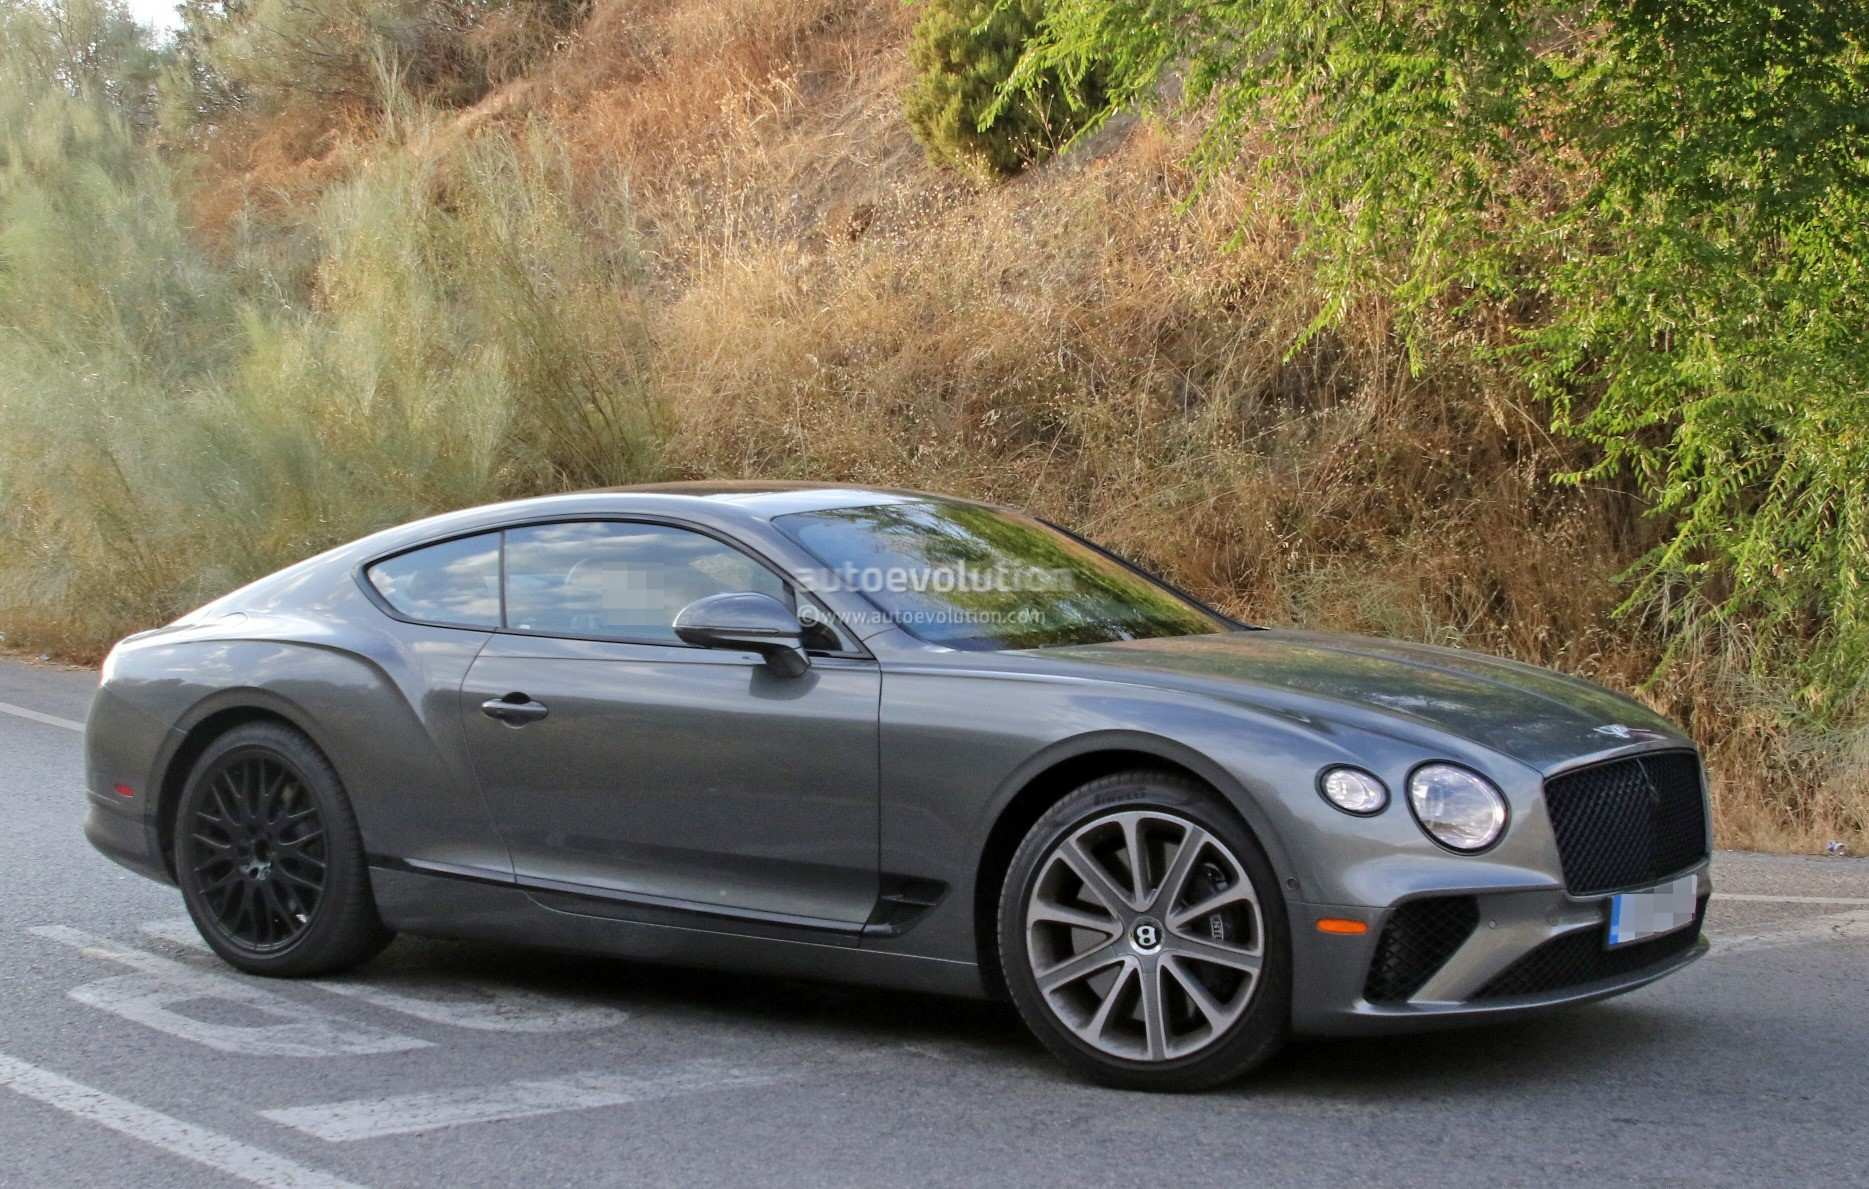 77 The Best 2019 Bentley Continental Gt V8 Photos